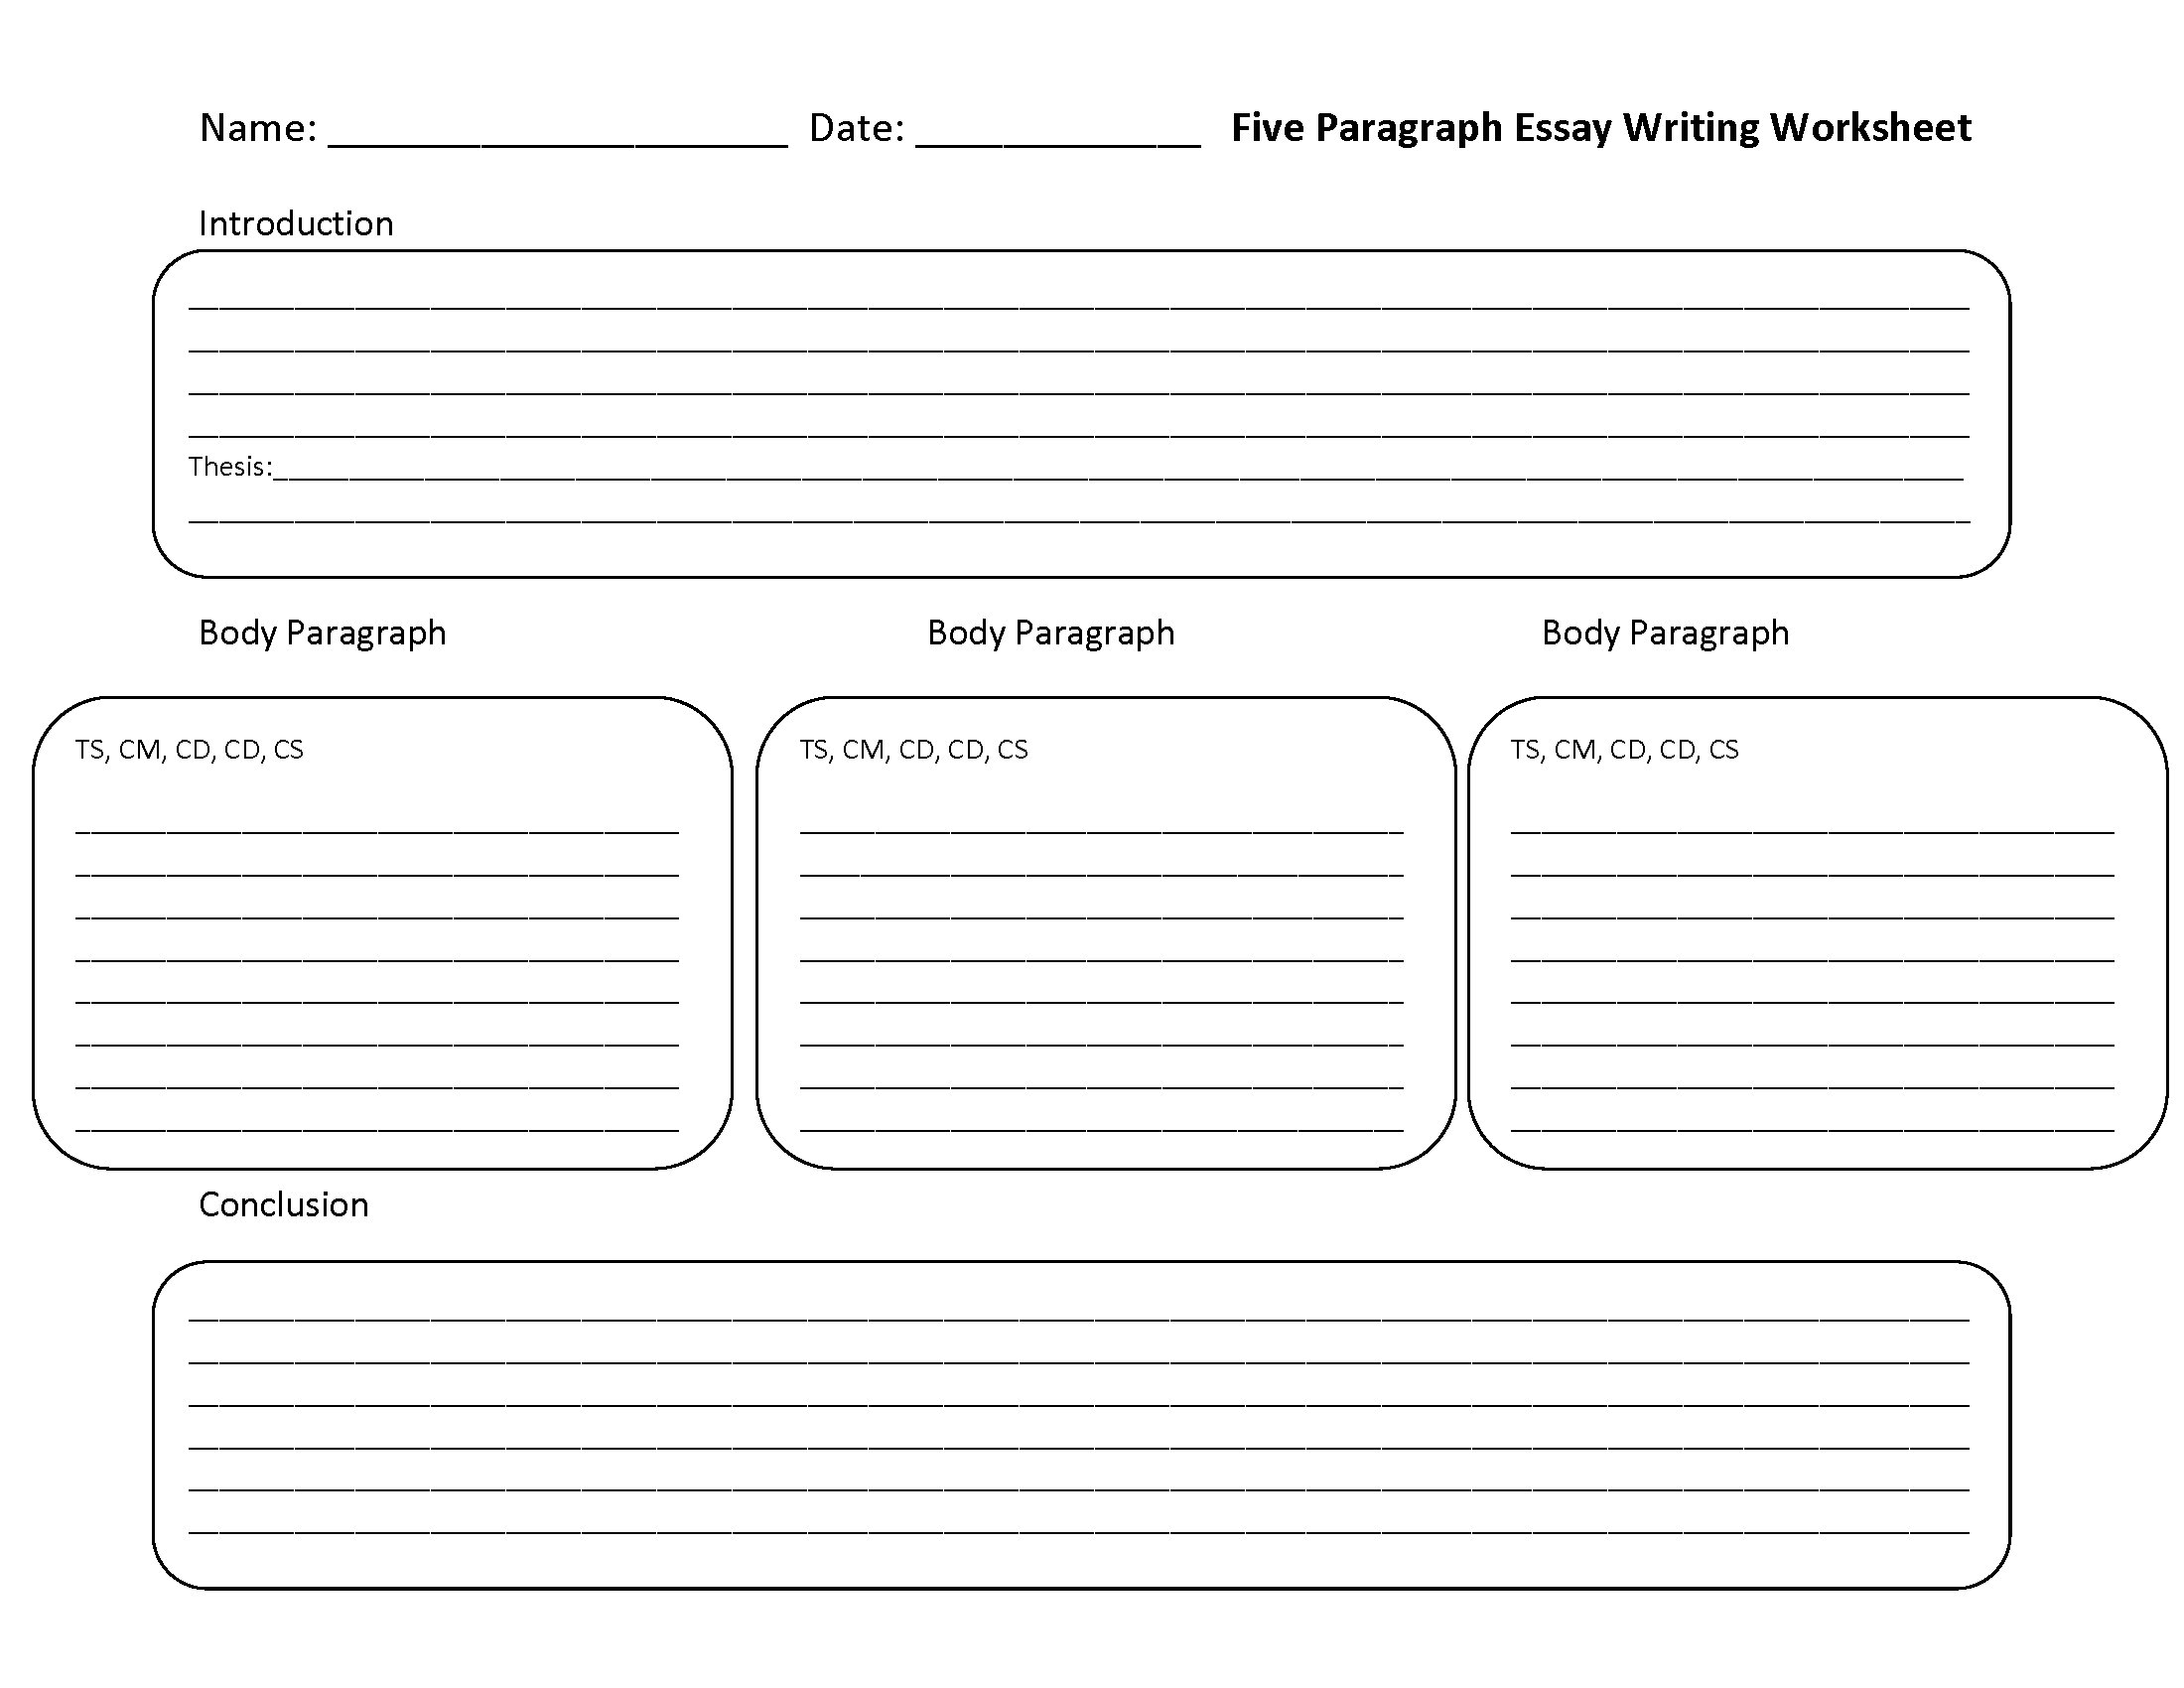 five paragraph essay writing worksheets - Format Of A 5 Paragraph Essay